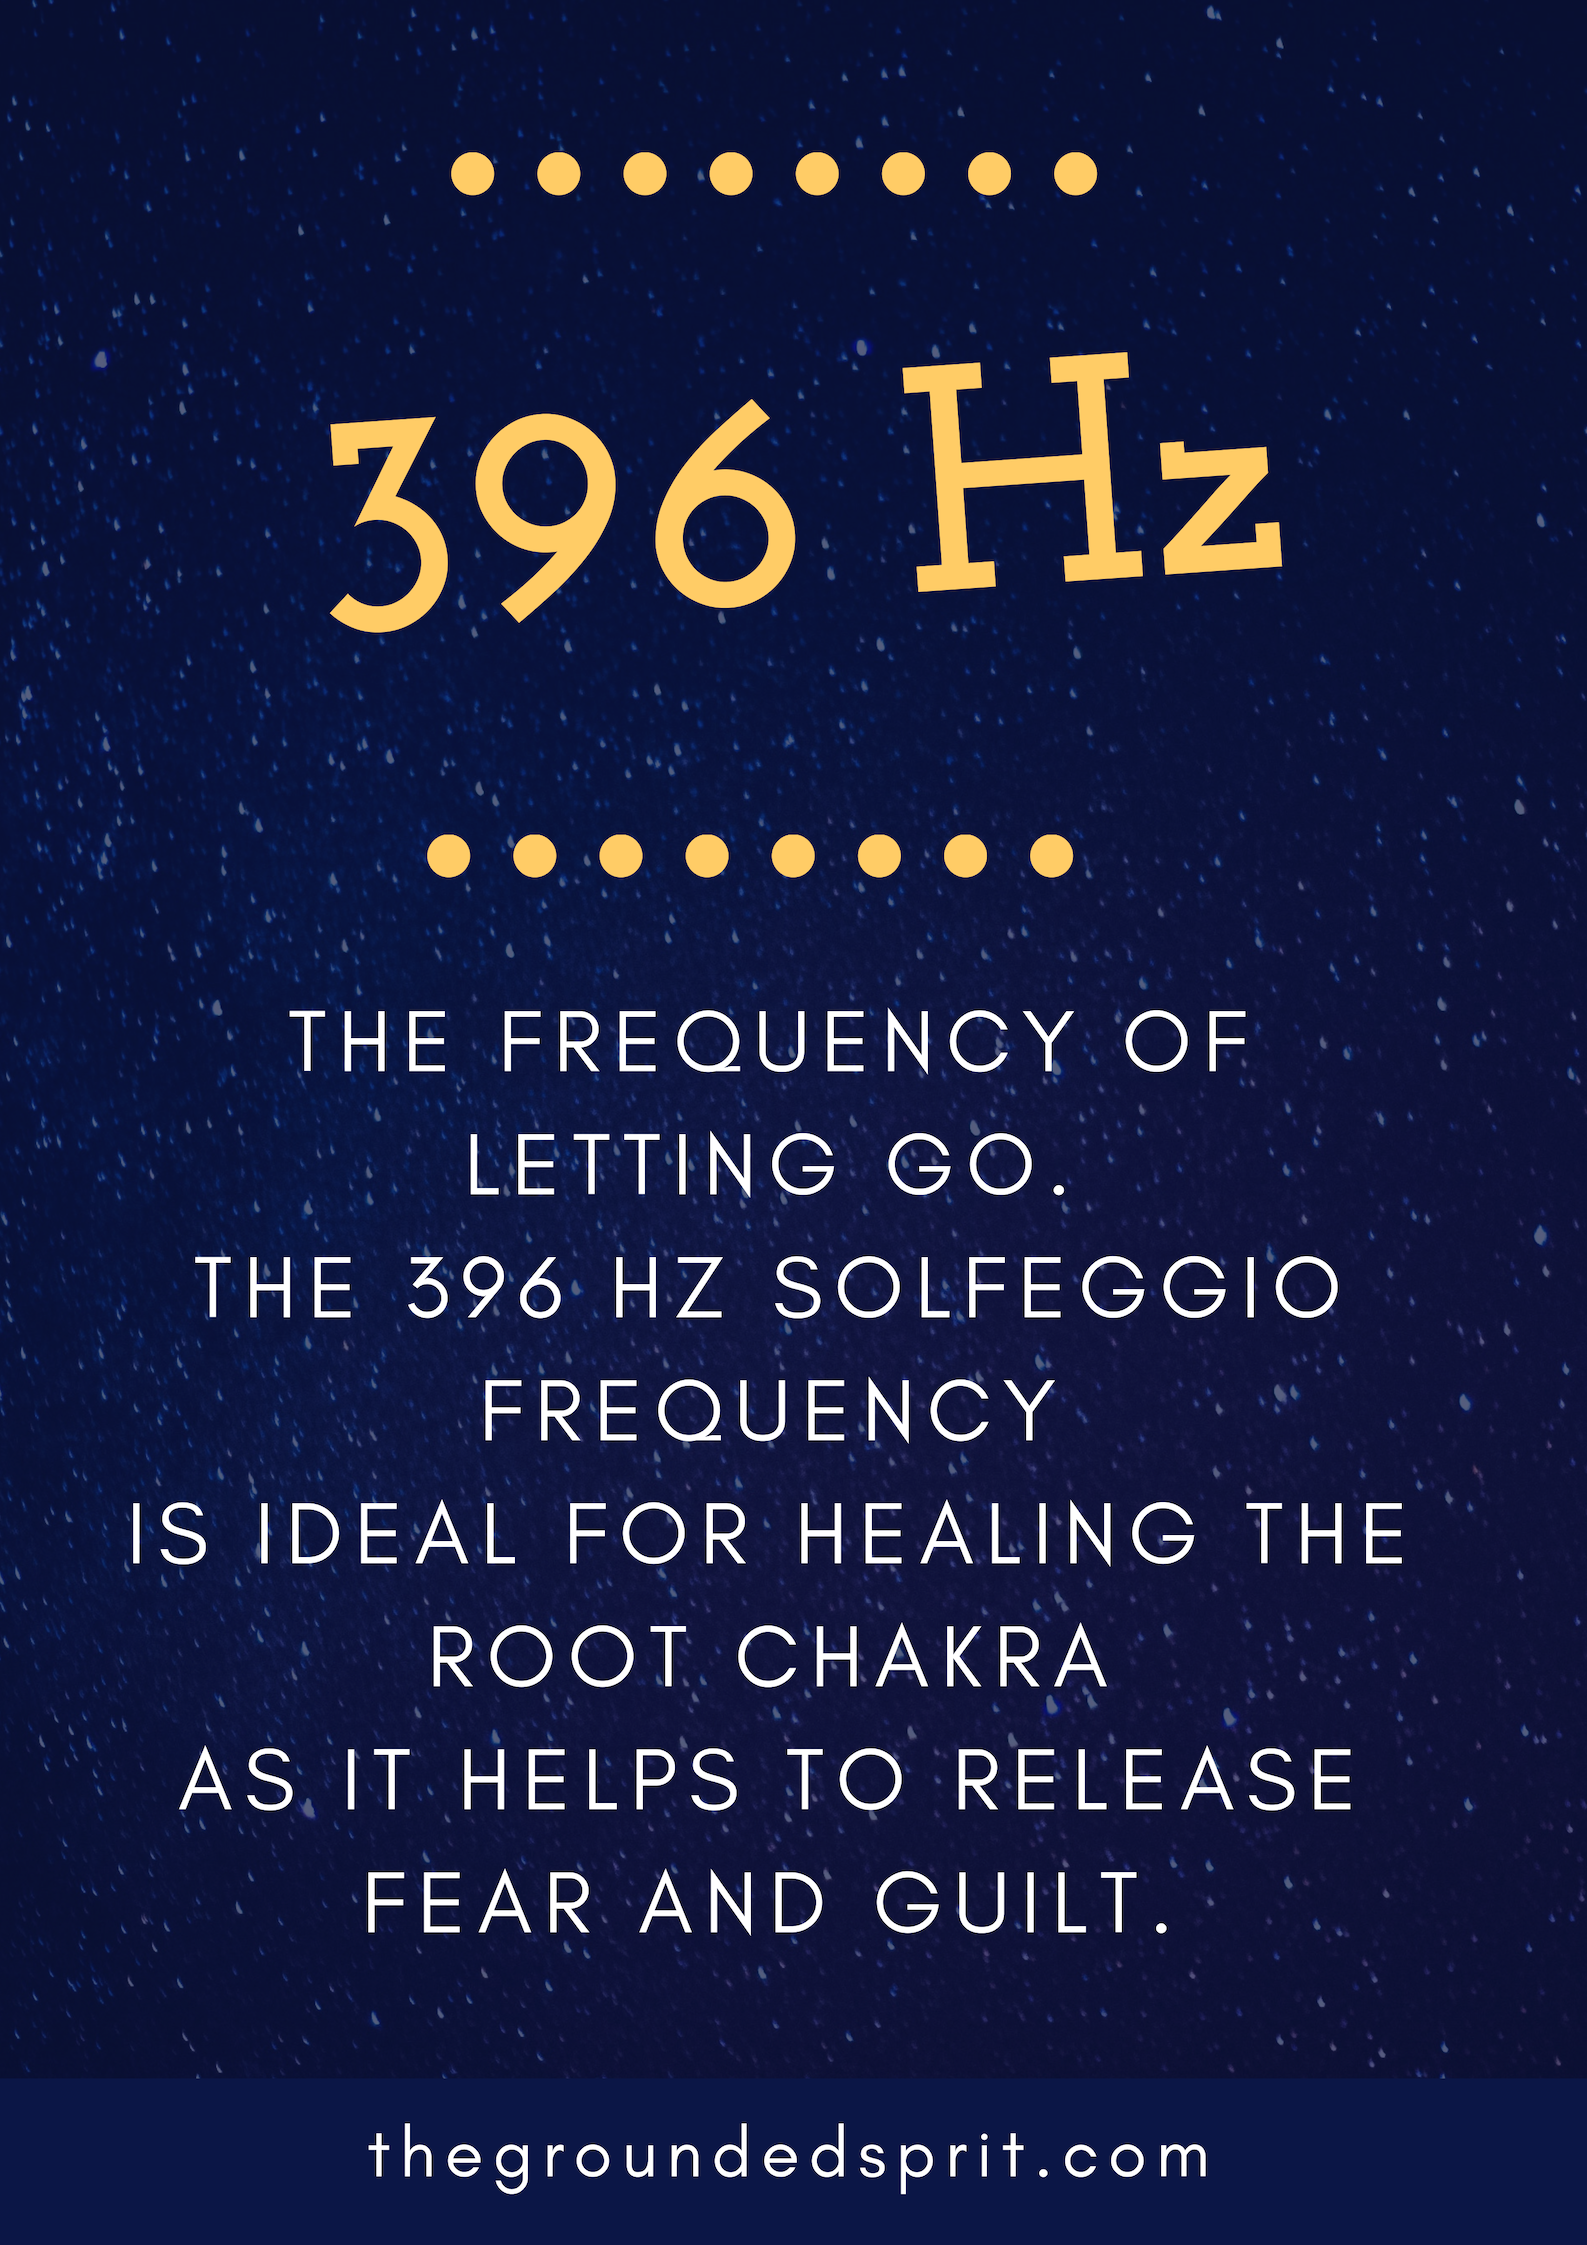 396 Hz is the perfect solfeggio frequency for root chakra